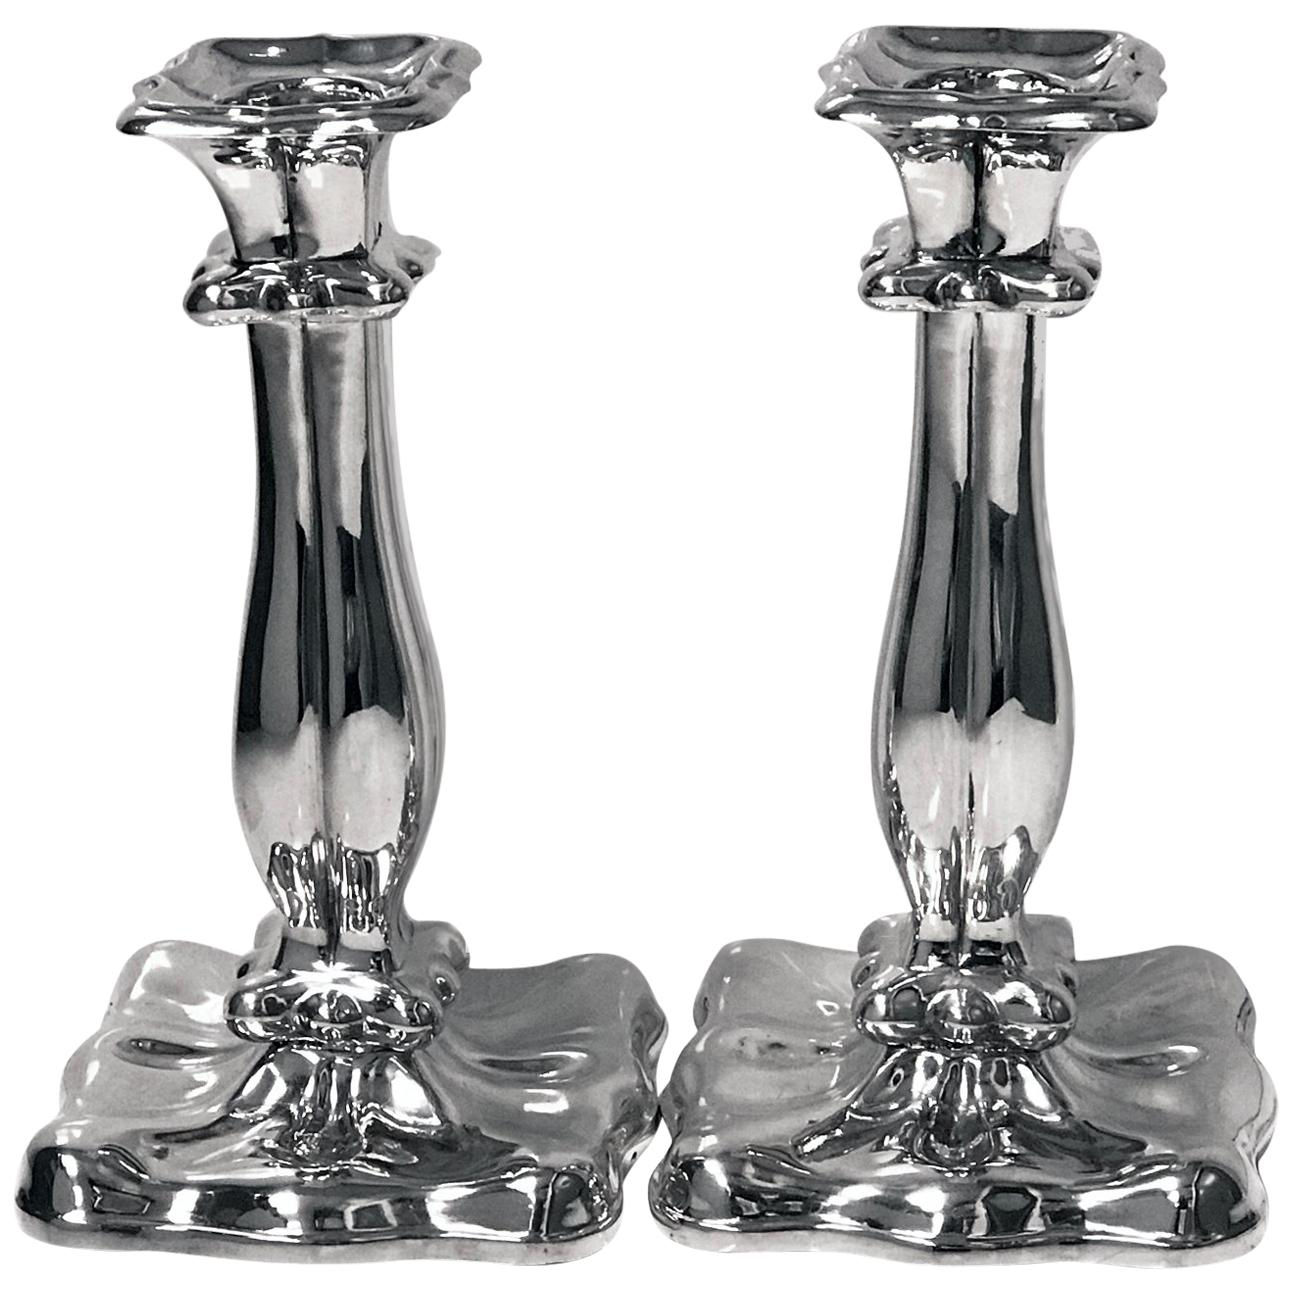 Pair of Austrian Silver Candlesticks, Vienna, 1840